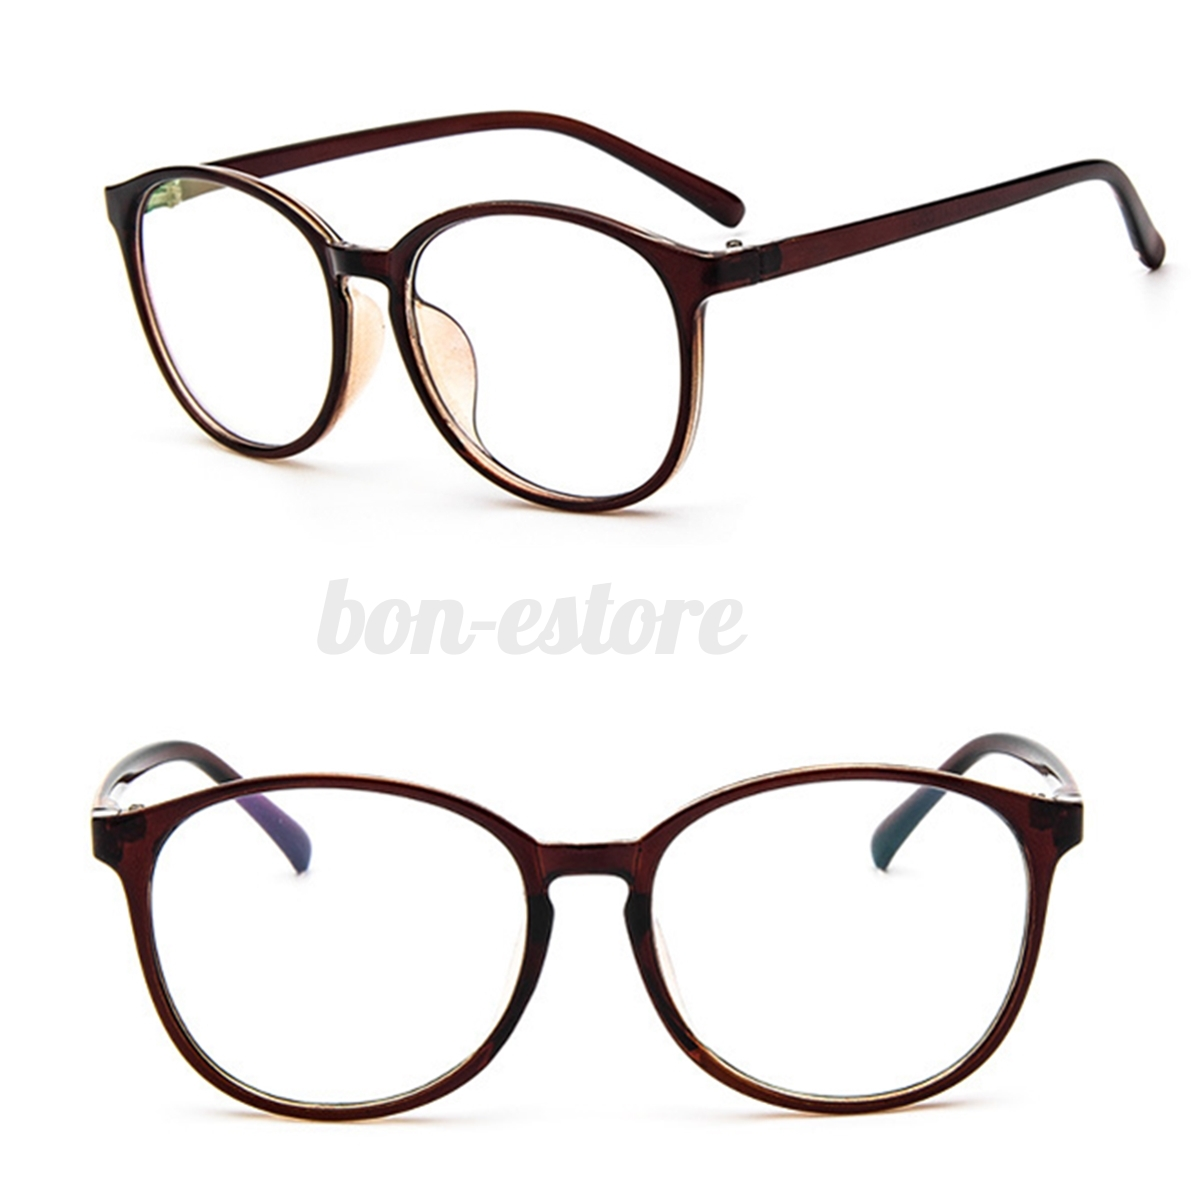 Fashion Eyeglasses Men Women Clear Plain Lens Large Oval ...